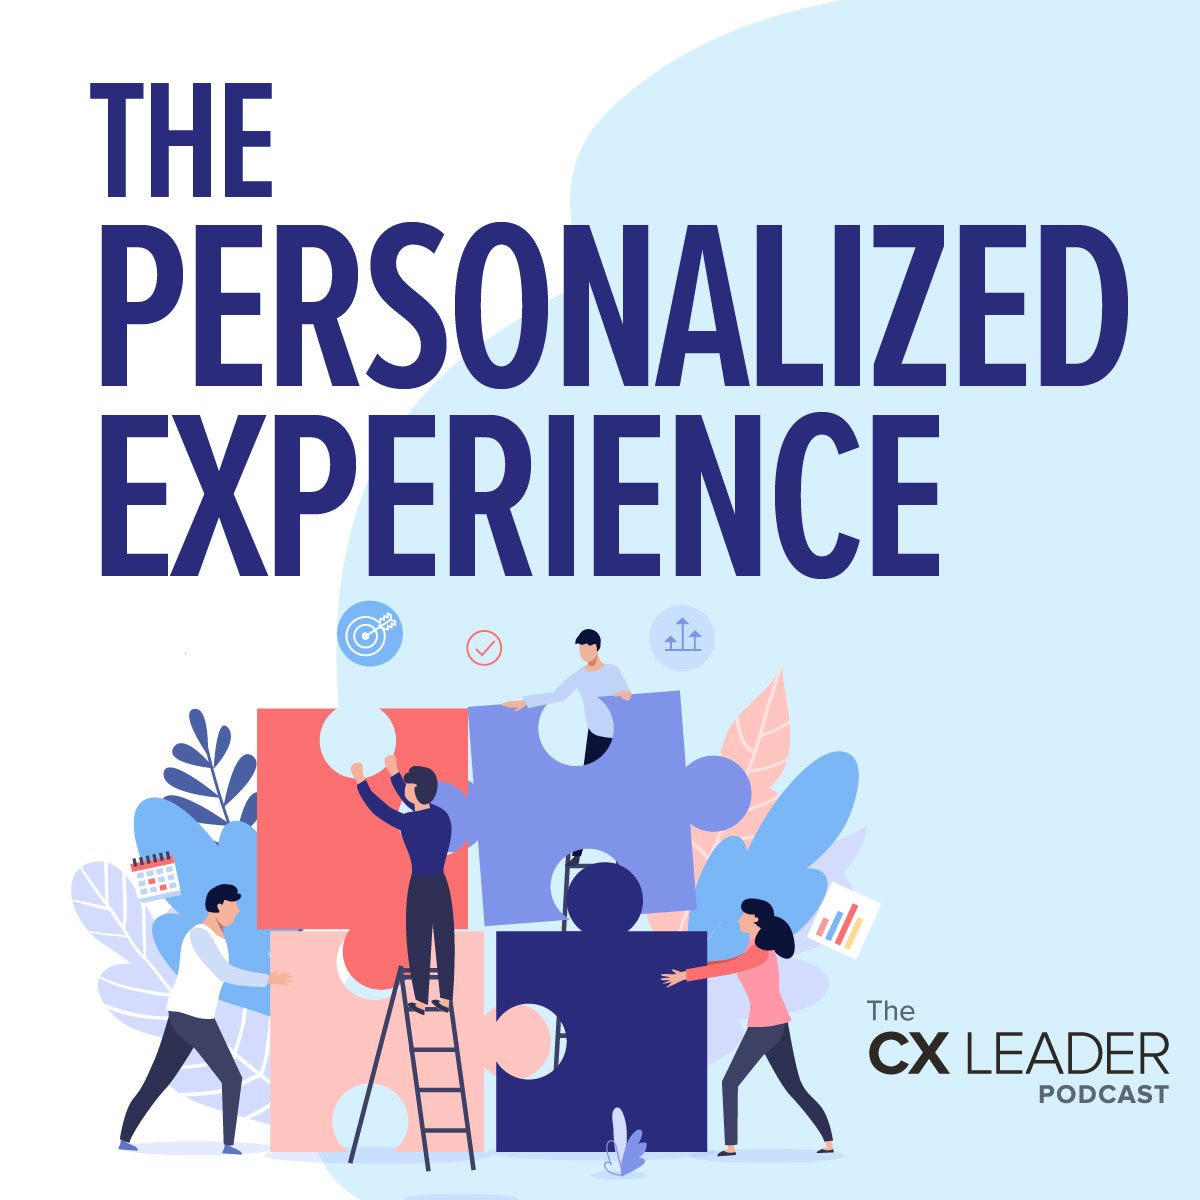 The Personalized Experience